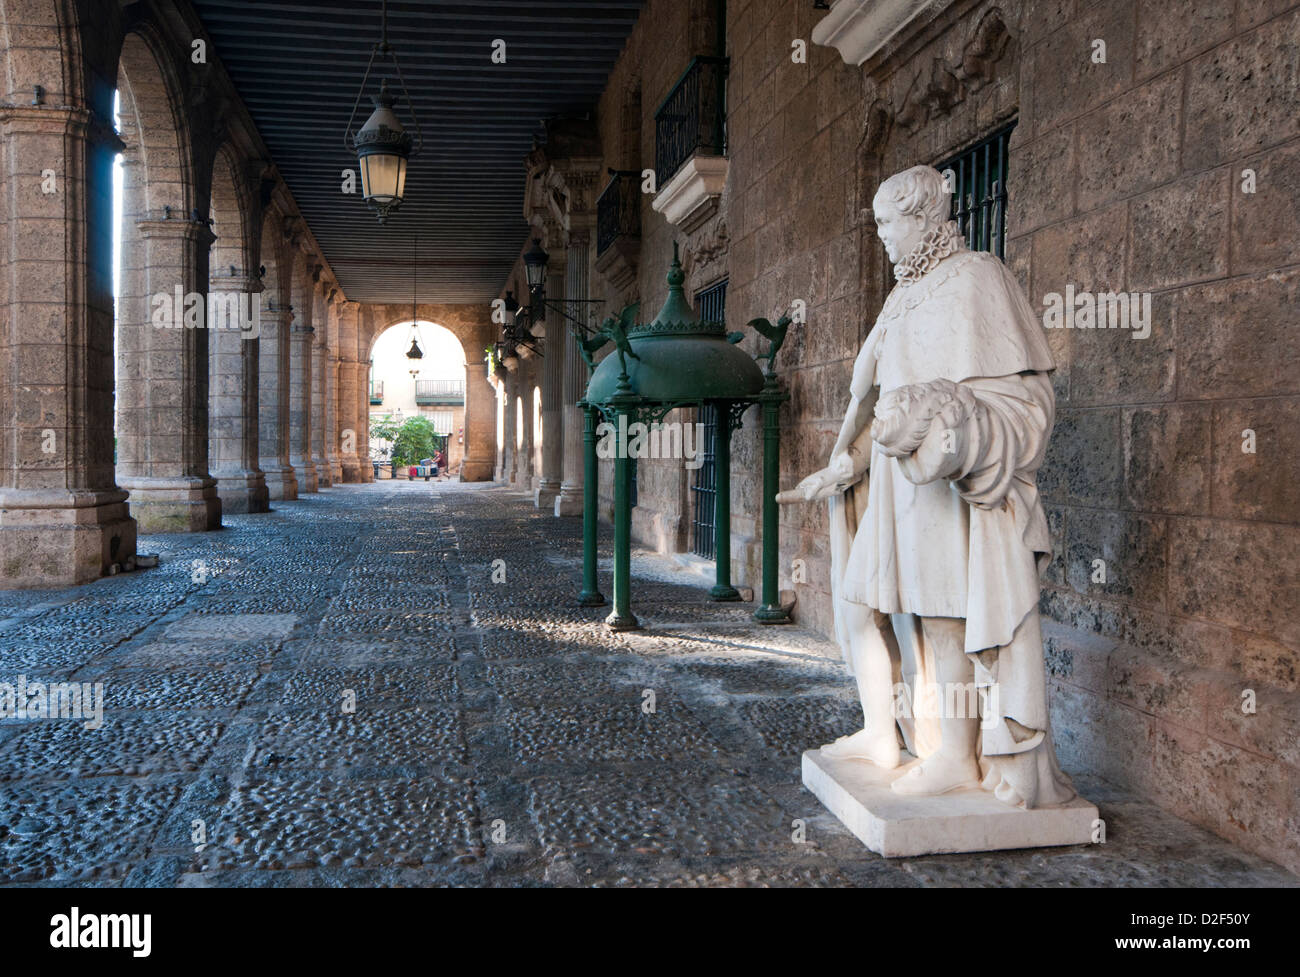 Under the Arches of the Palacio de los Capitanes Generales, Plaza de Armas, Habana Vieja, Havana, Cuba, Caribbean - Stock Image